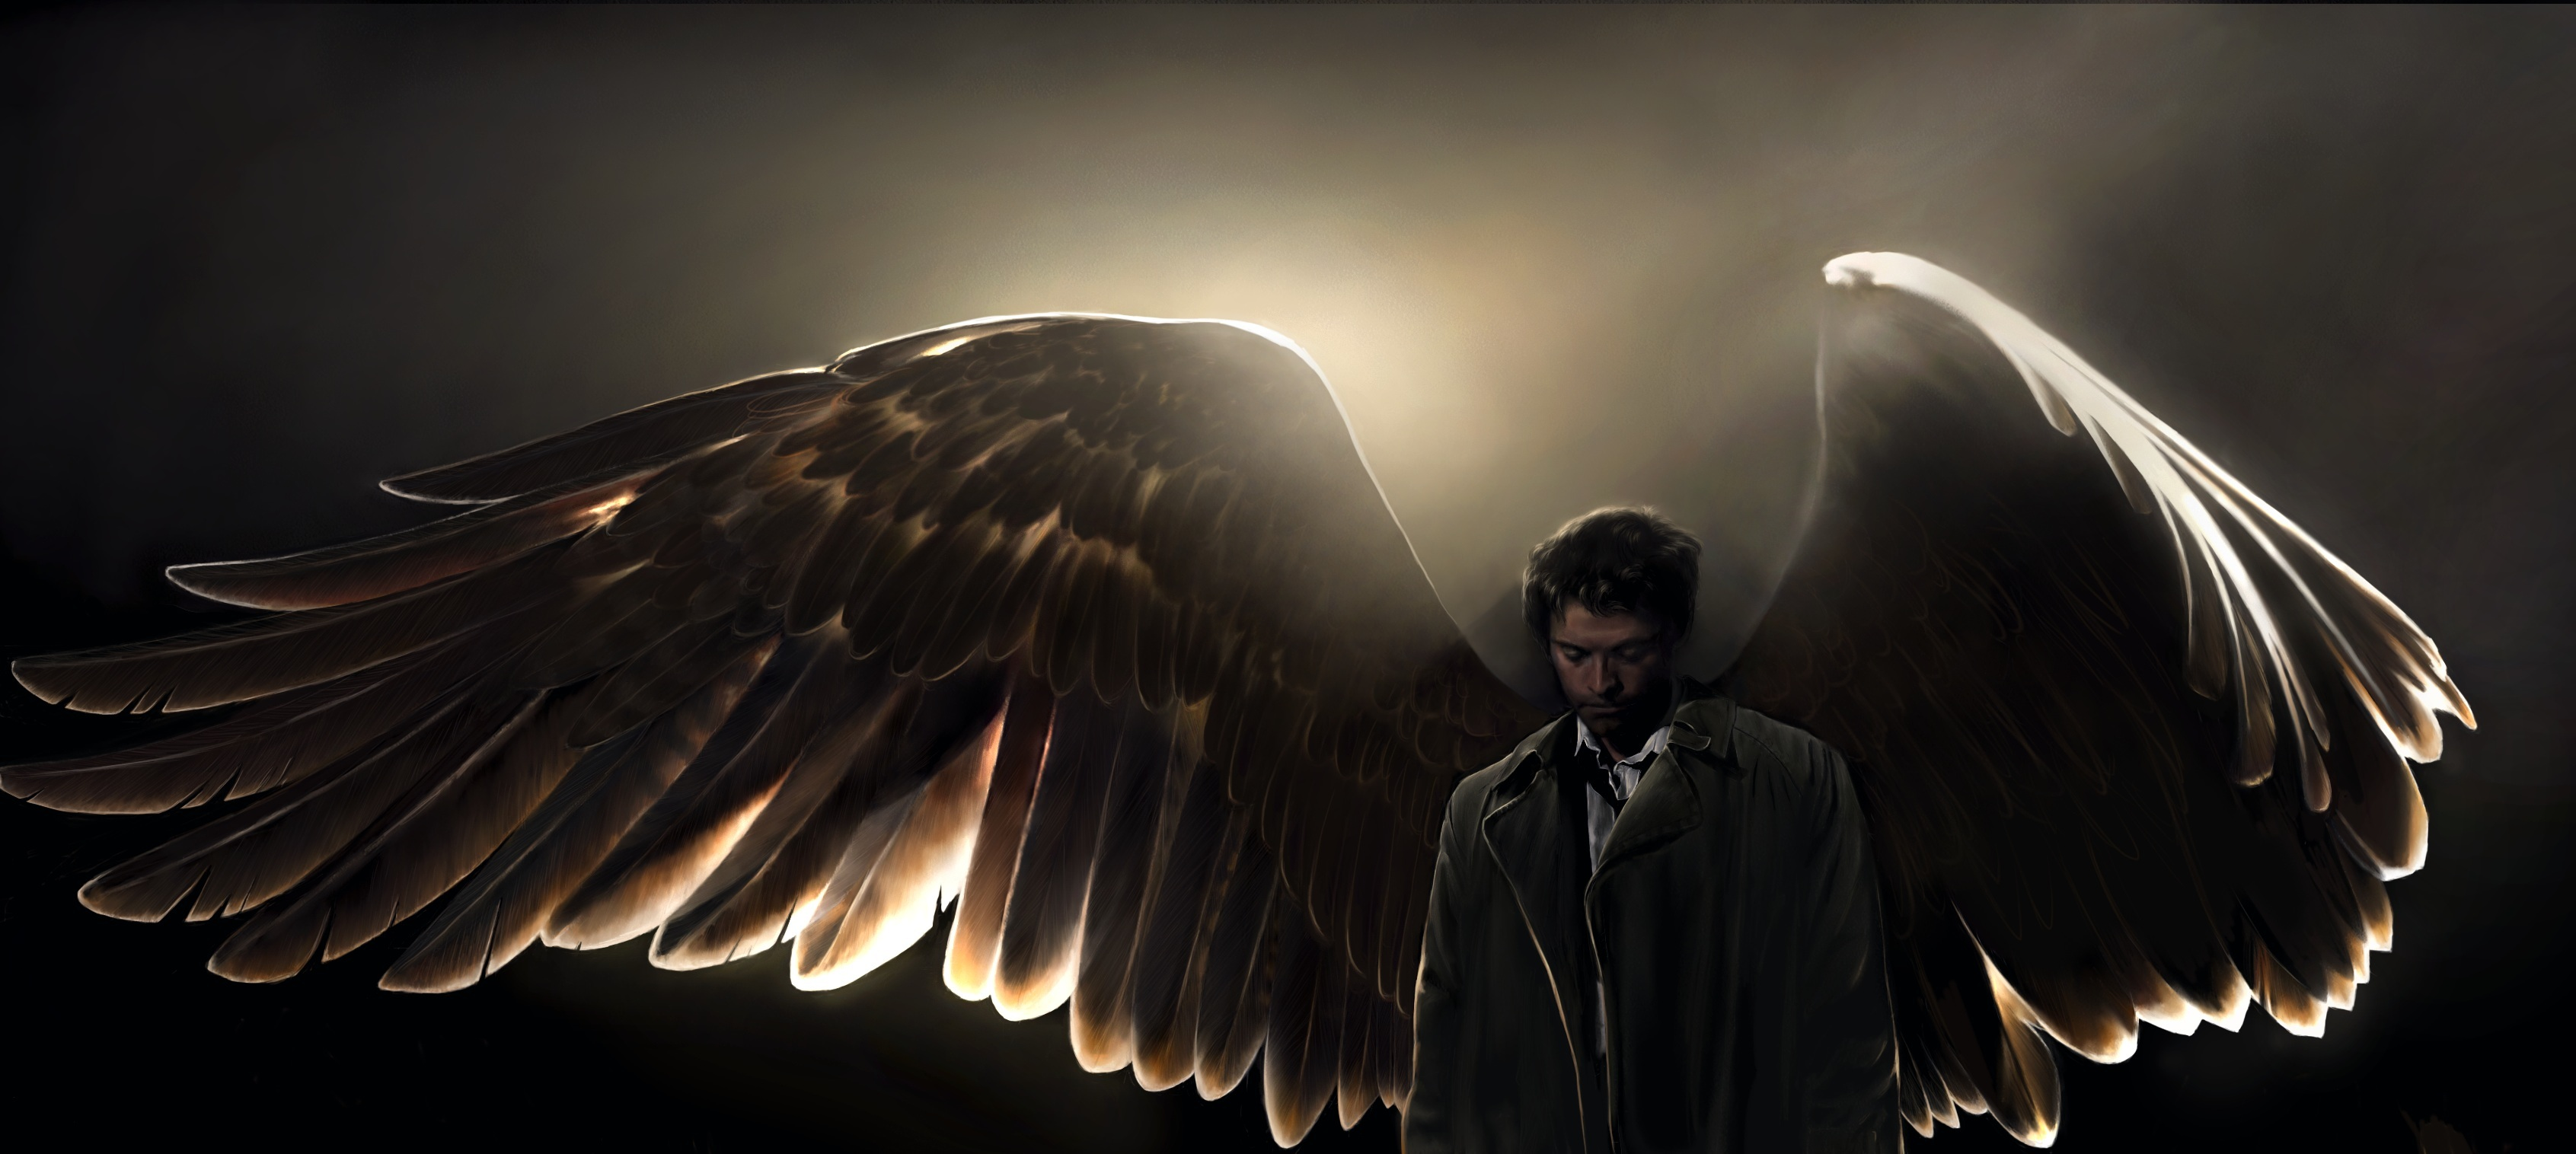 supernatural fiction about the dual nature